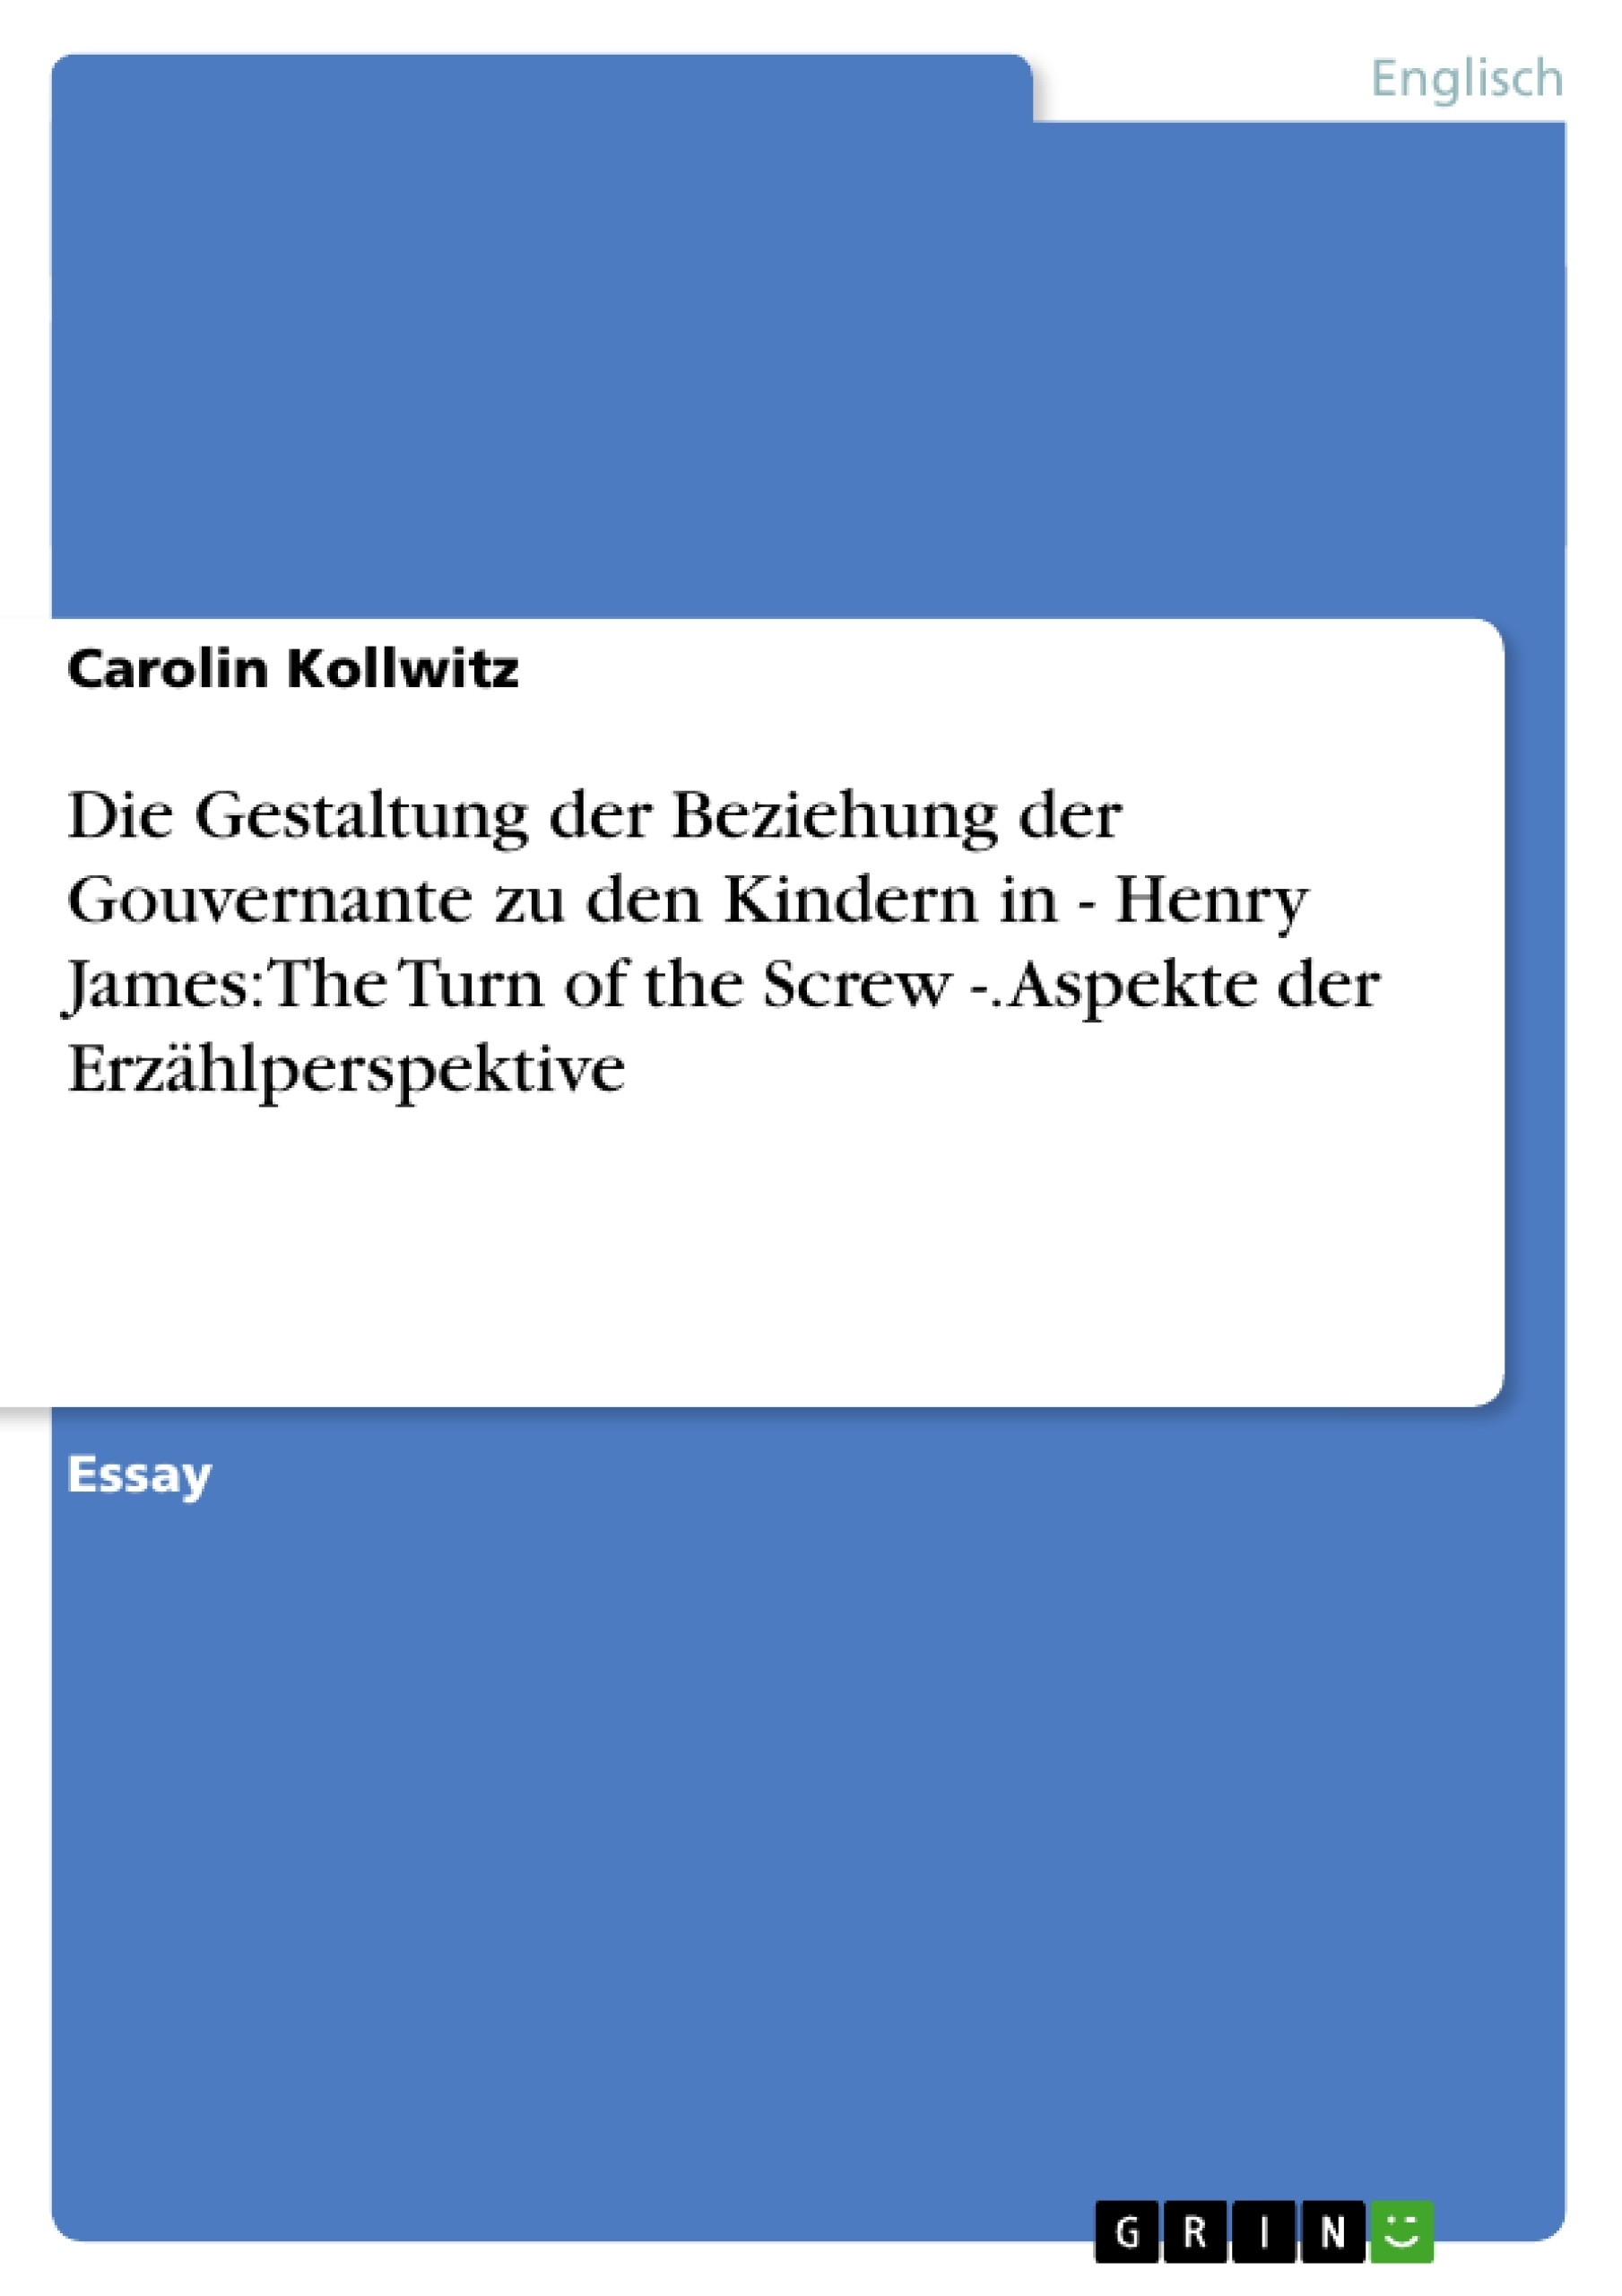 Titel: Die Gestaltung der Beziehung der Gouvernante zu den Kindern in - Henry James:The Turn of the Screw -. Aspekte der Erzählperspektive